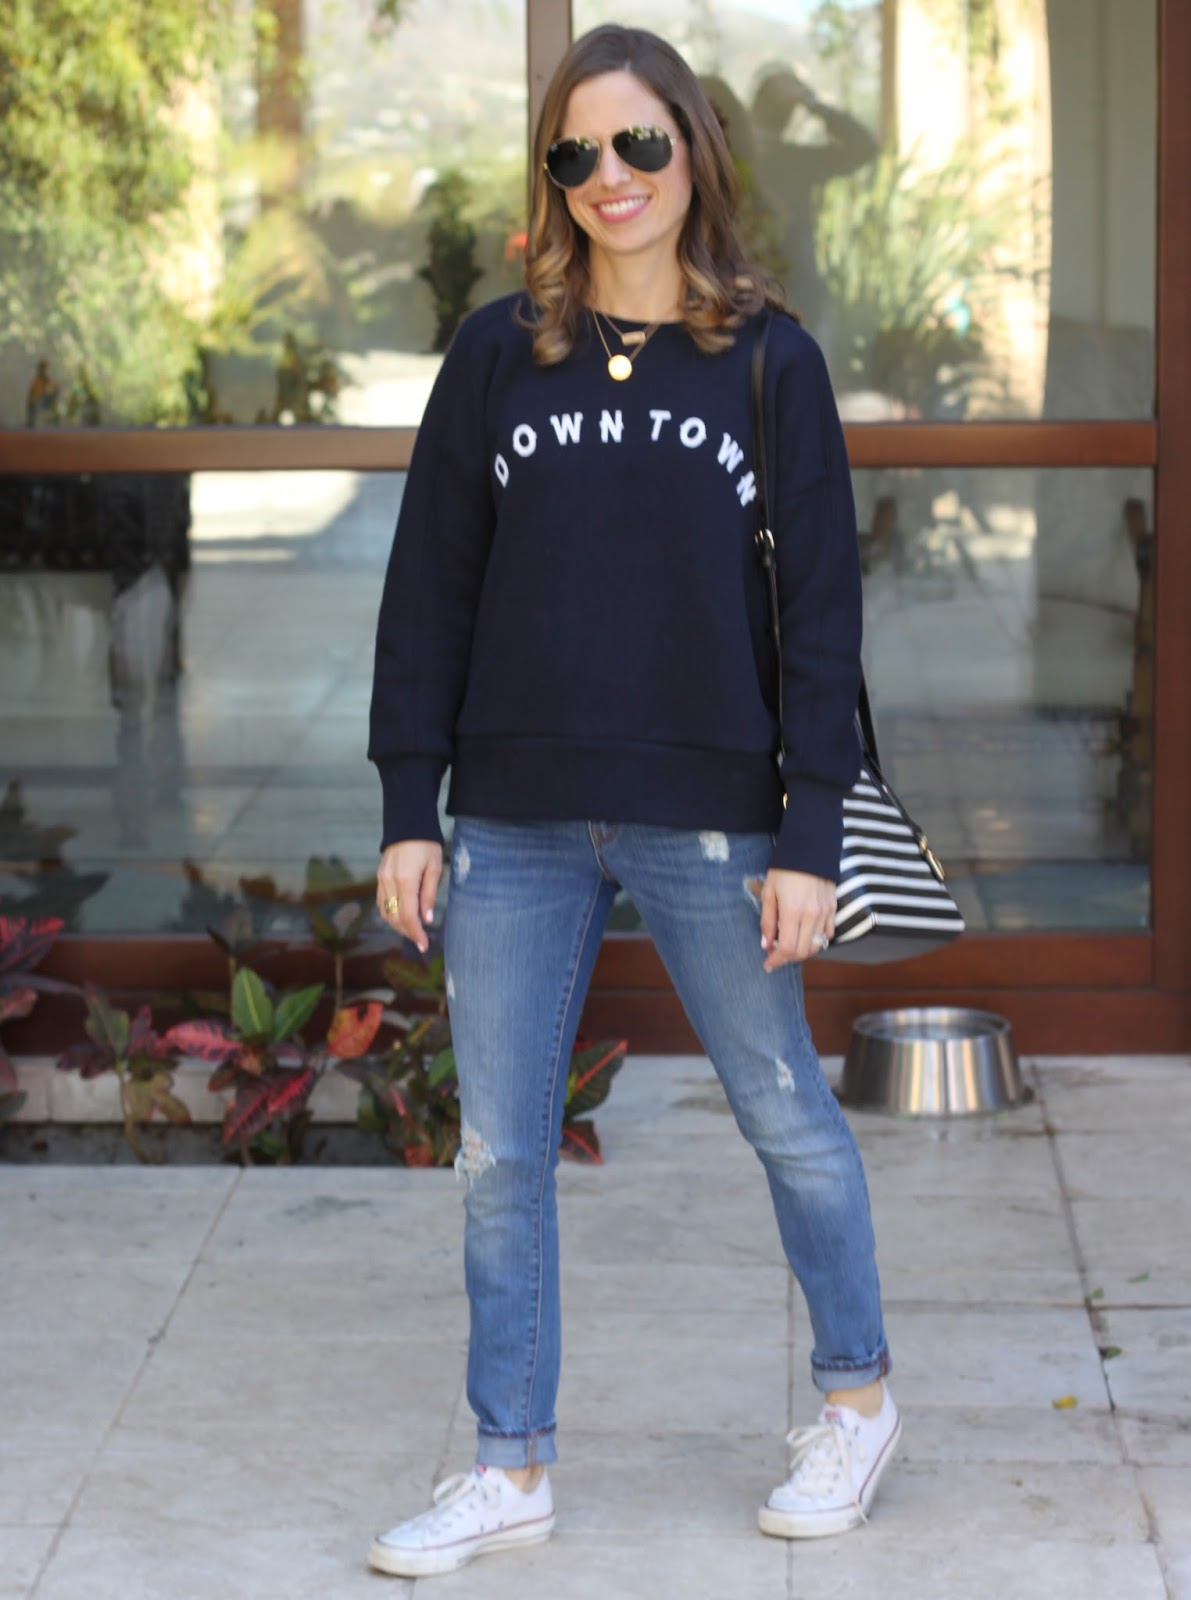 downtown sweatshirt